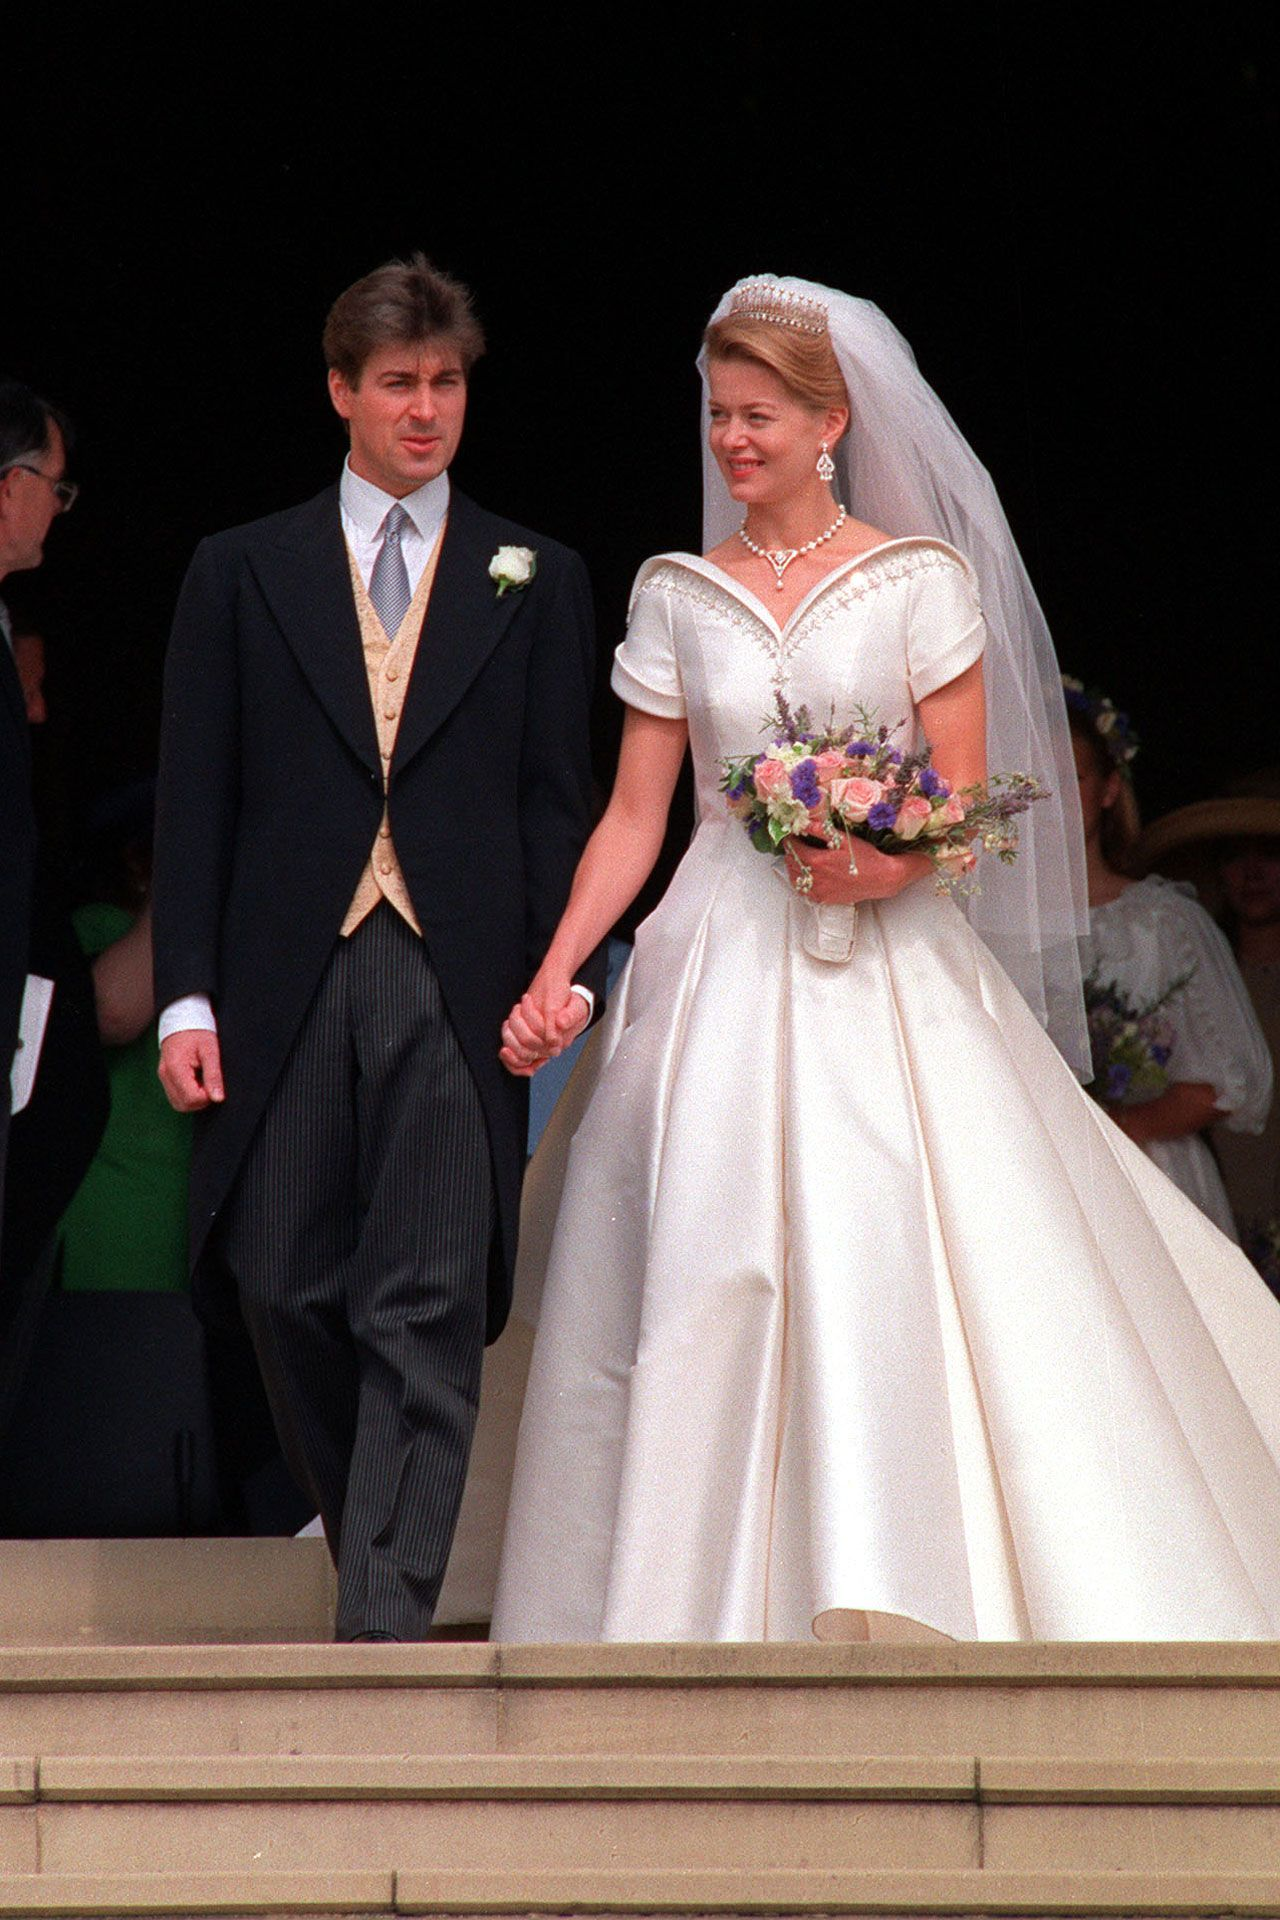 lady helen of windsor royal wedding dresses